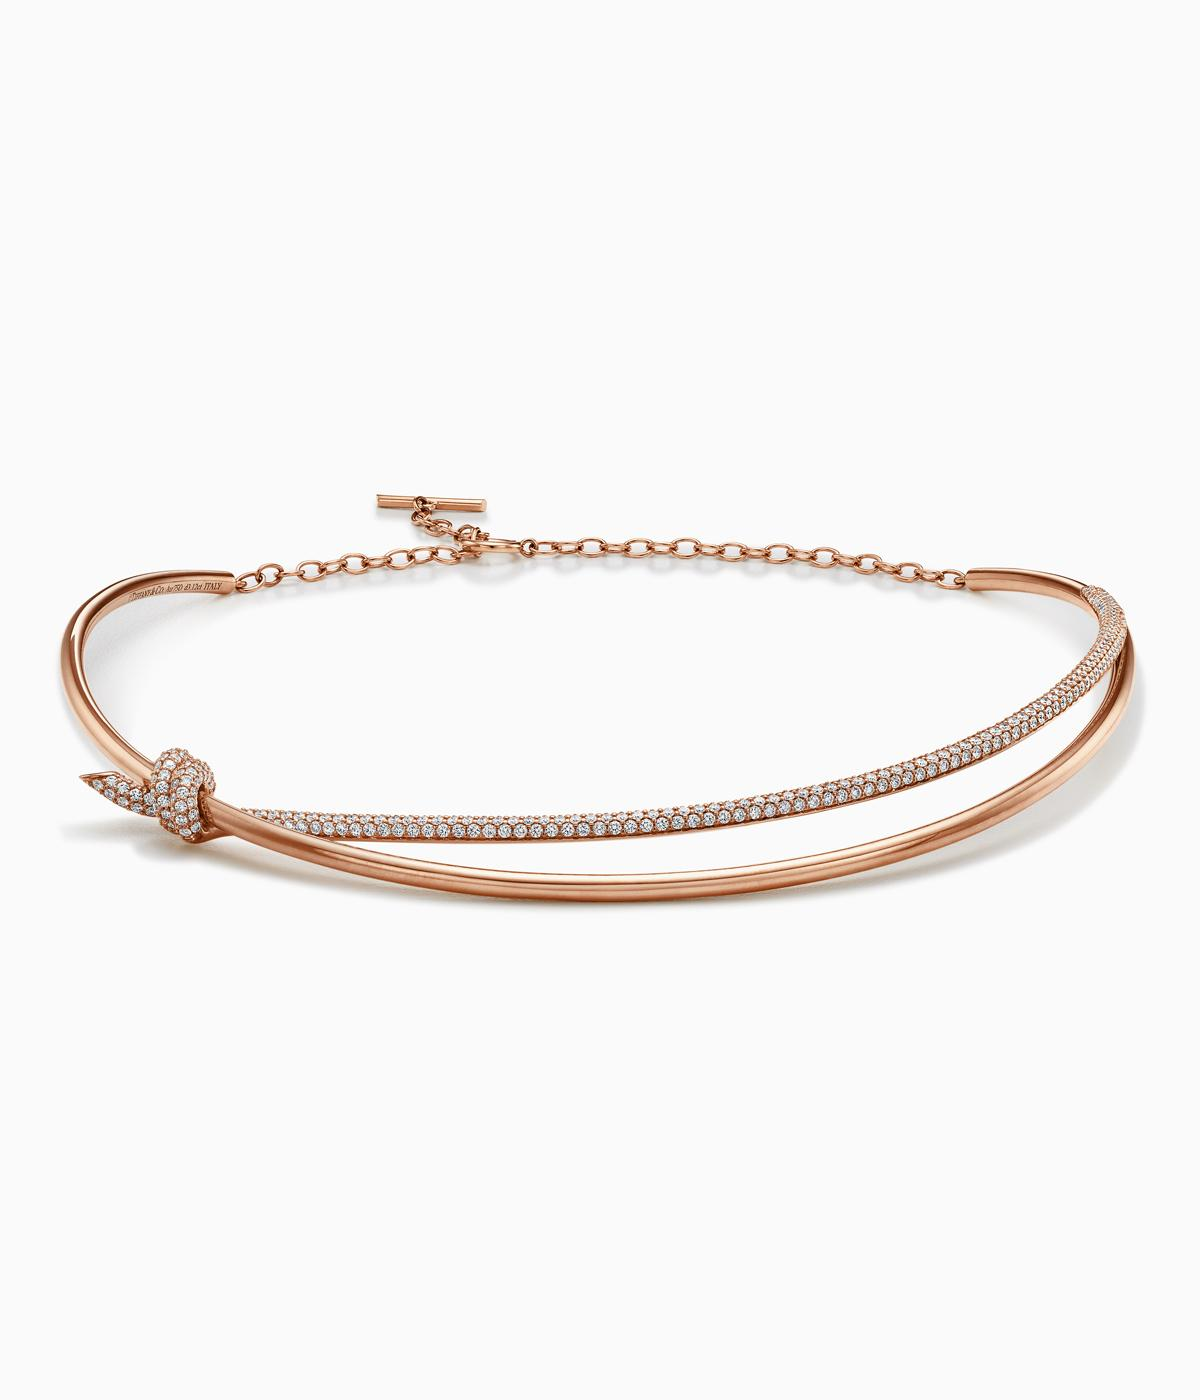 Tiffany gold bracelets and rings